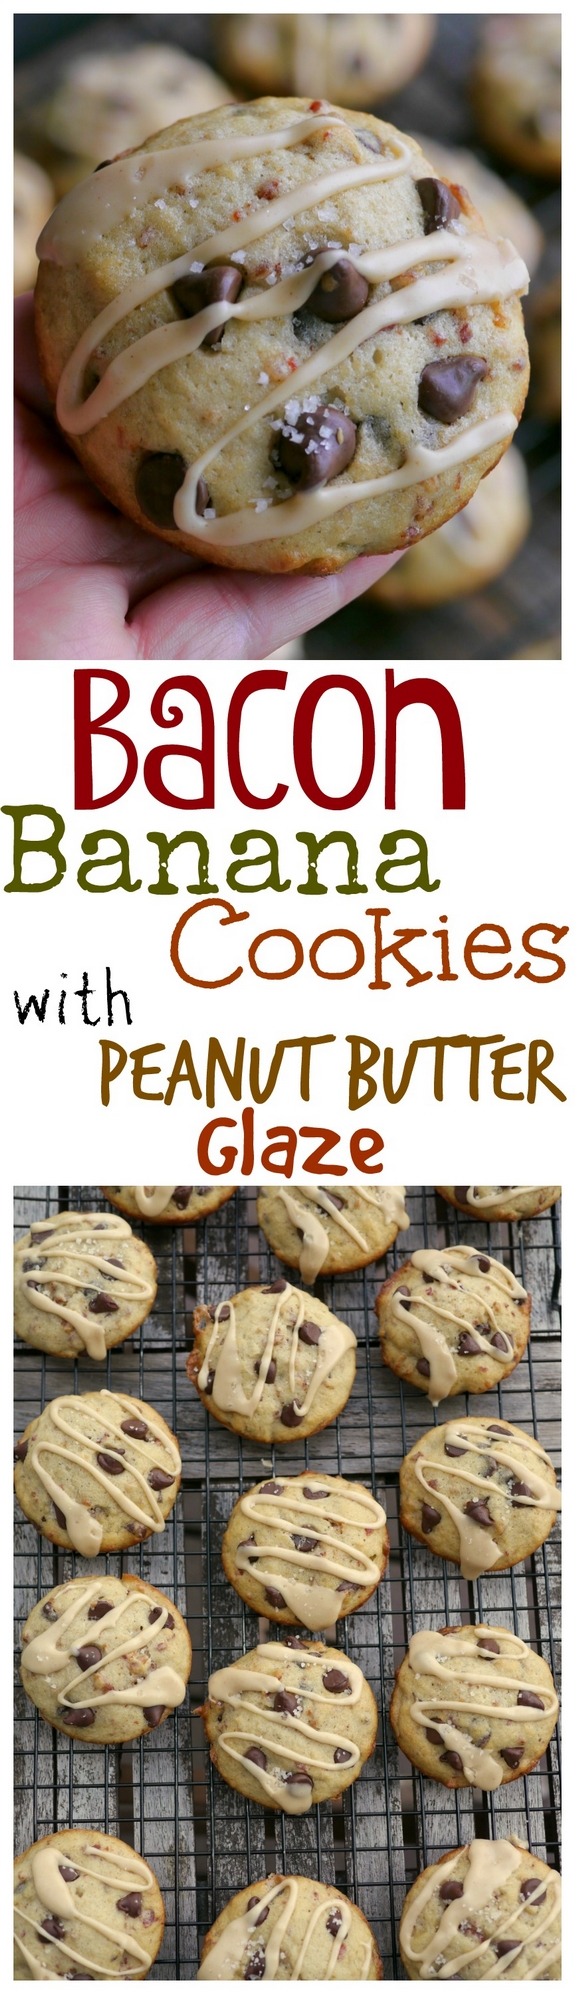 Bacon Banana Cookies with Peanut Butter Glaze